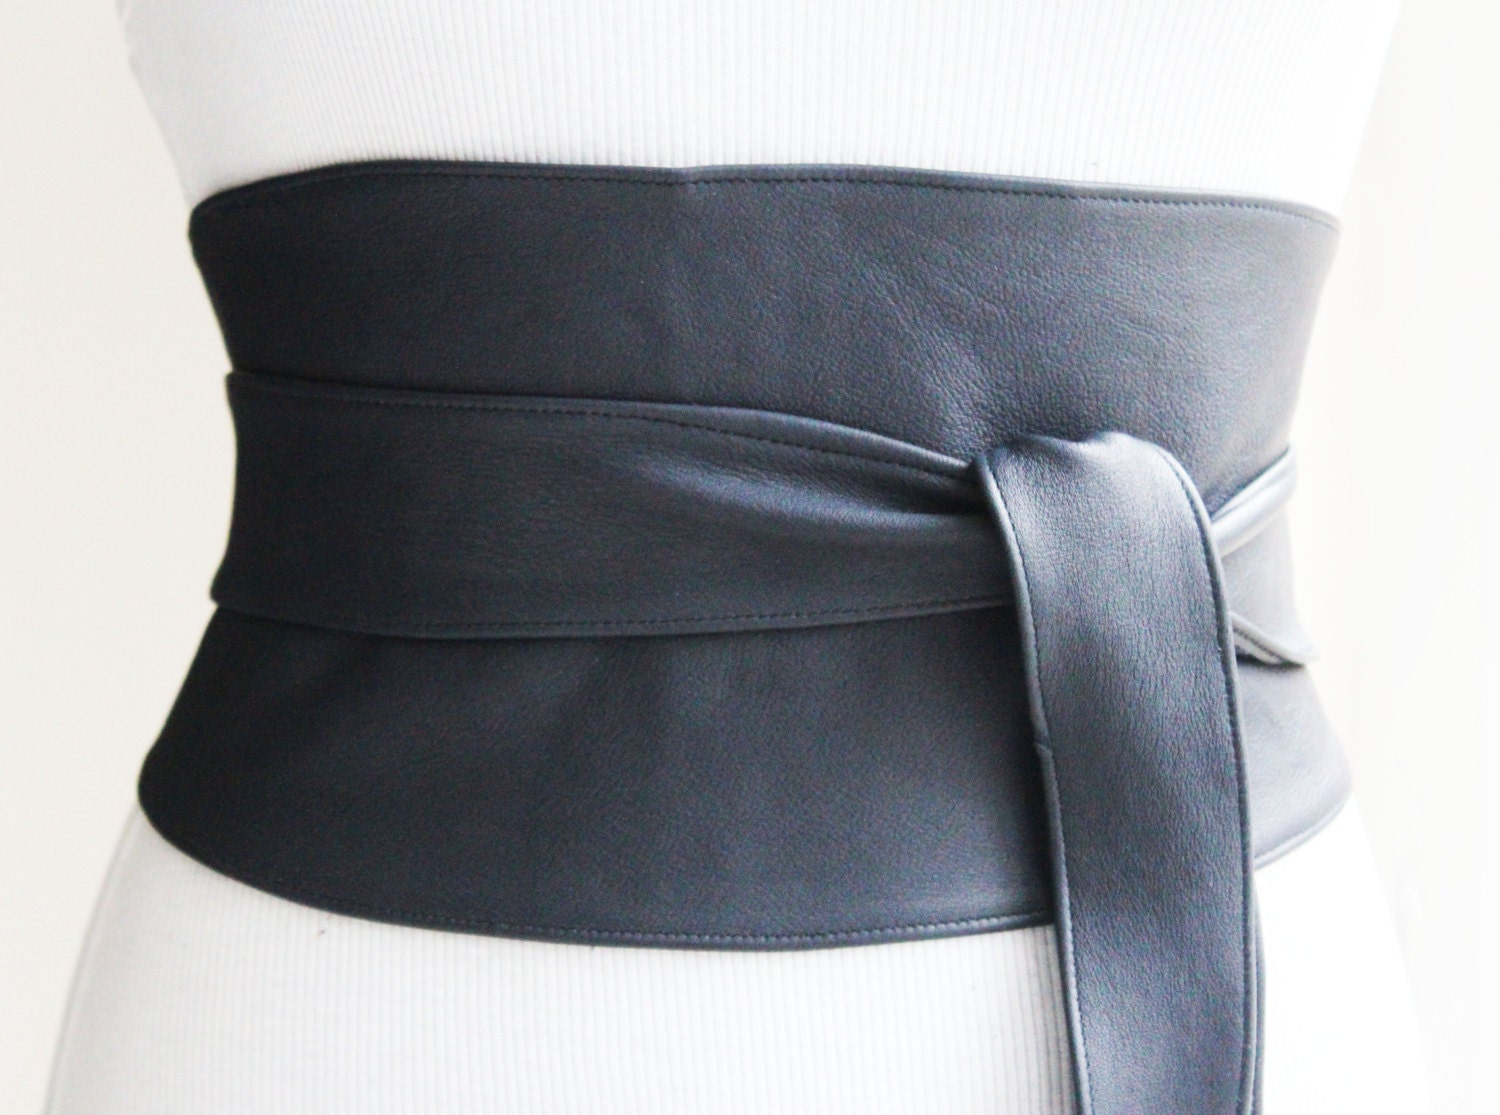 obi belt navy wide leather | corset waist belt | leather obi belt